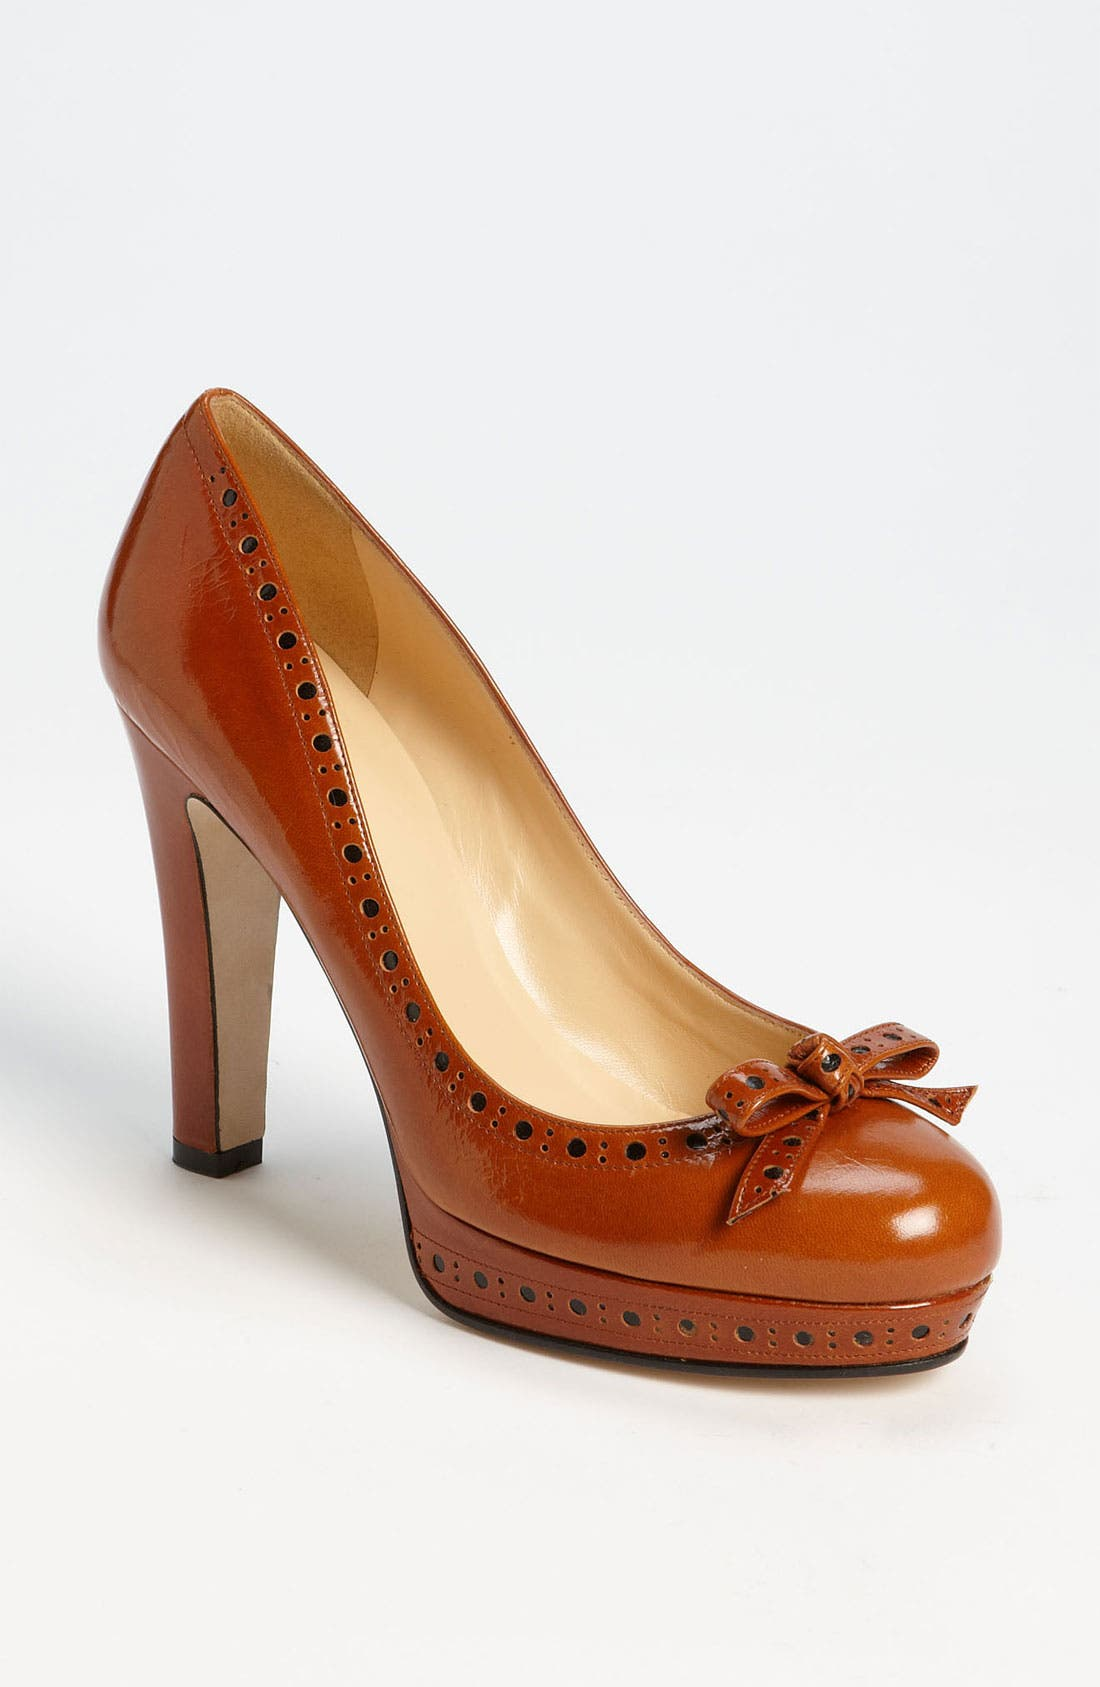 Alternate Image 1 Selected - kate spade new york 'lagoon' pump